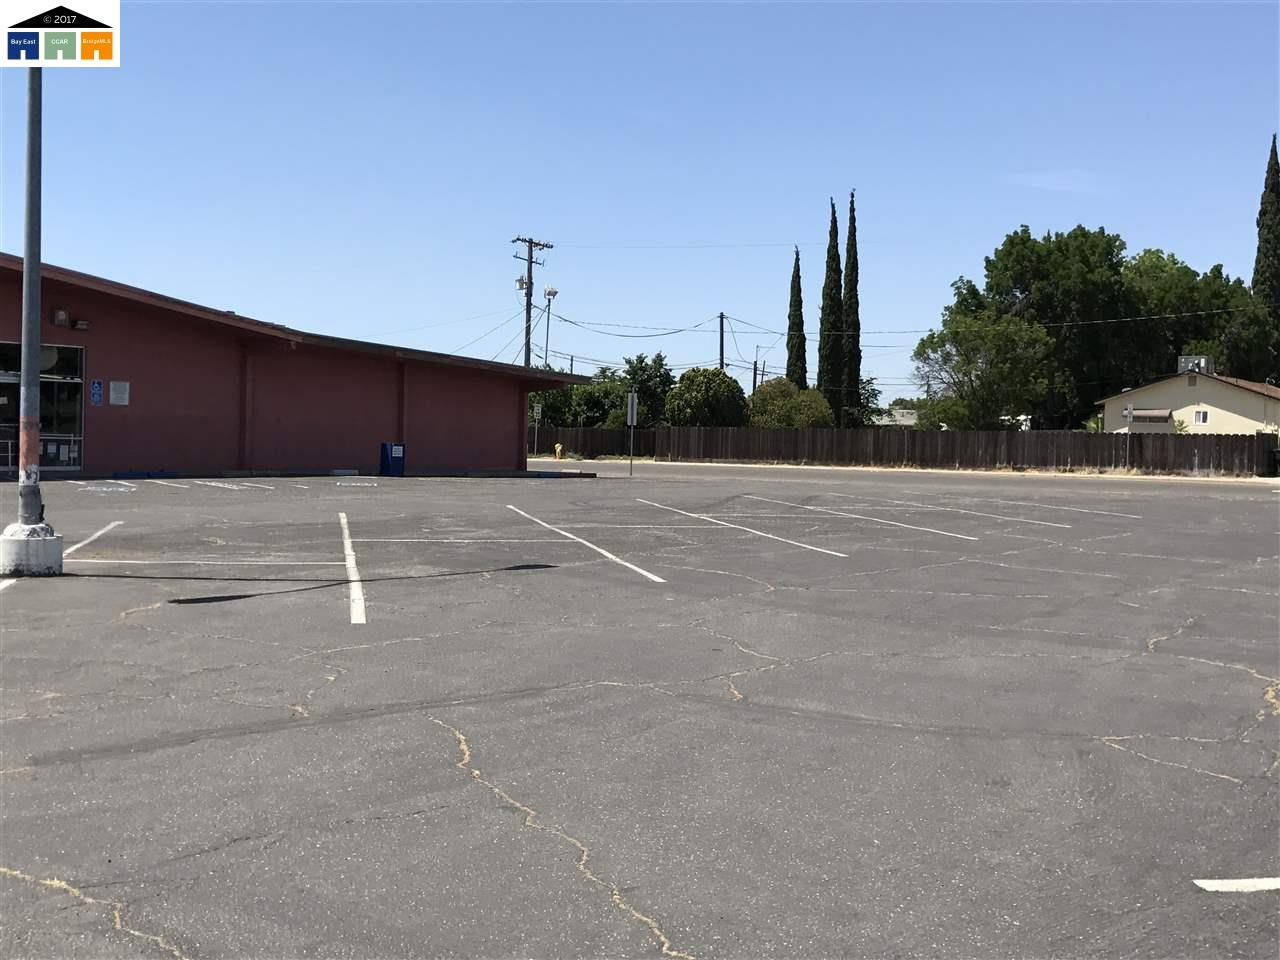 Additional photo for property listing at 1724 main street 1724 main street Livingston, California 95334 United States